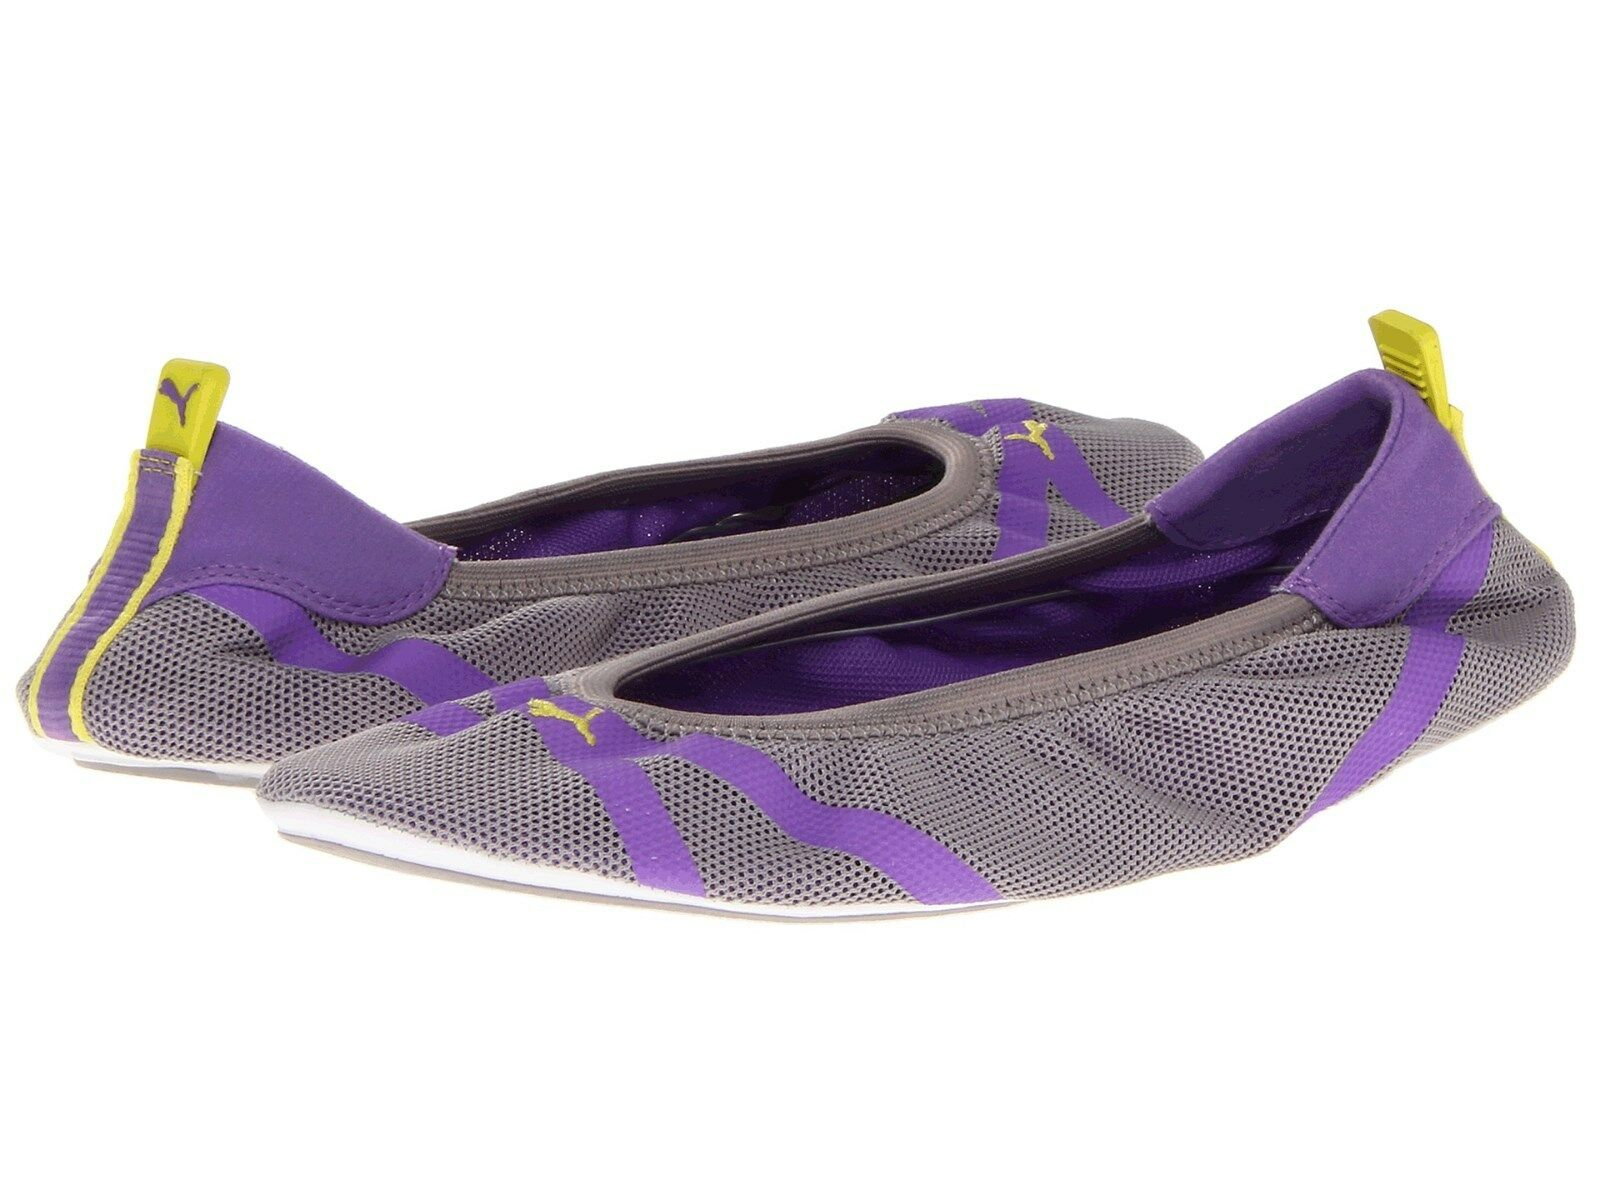 NEW Puma Axel Ballet Slip On Ballerina Shoes 8 Gray Purple Purple Gray FREE EXPEDITED MAIL cc497f